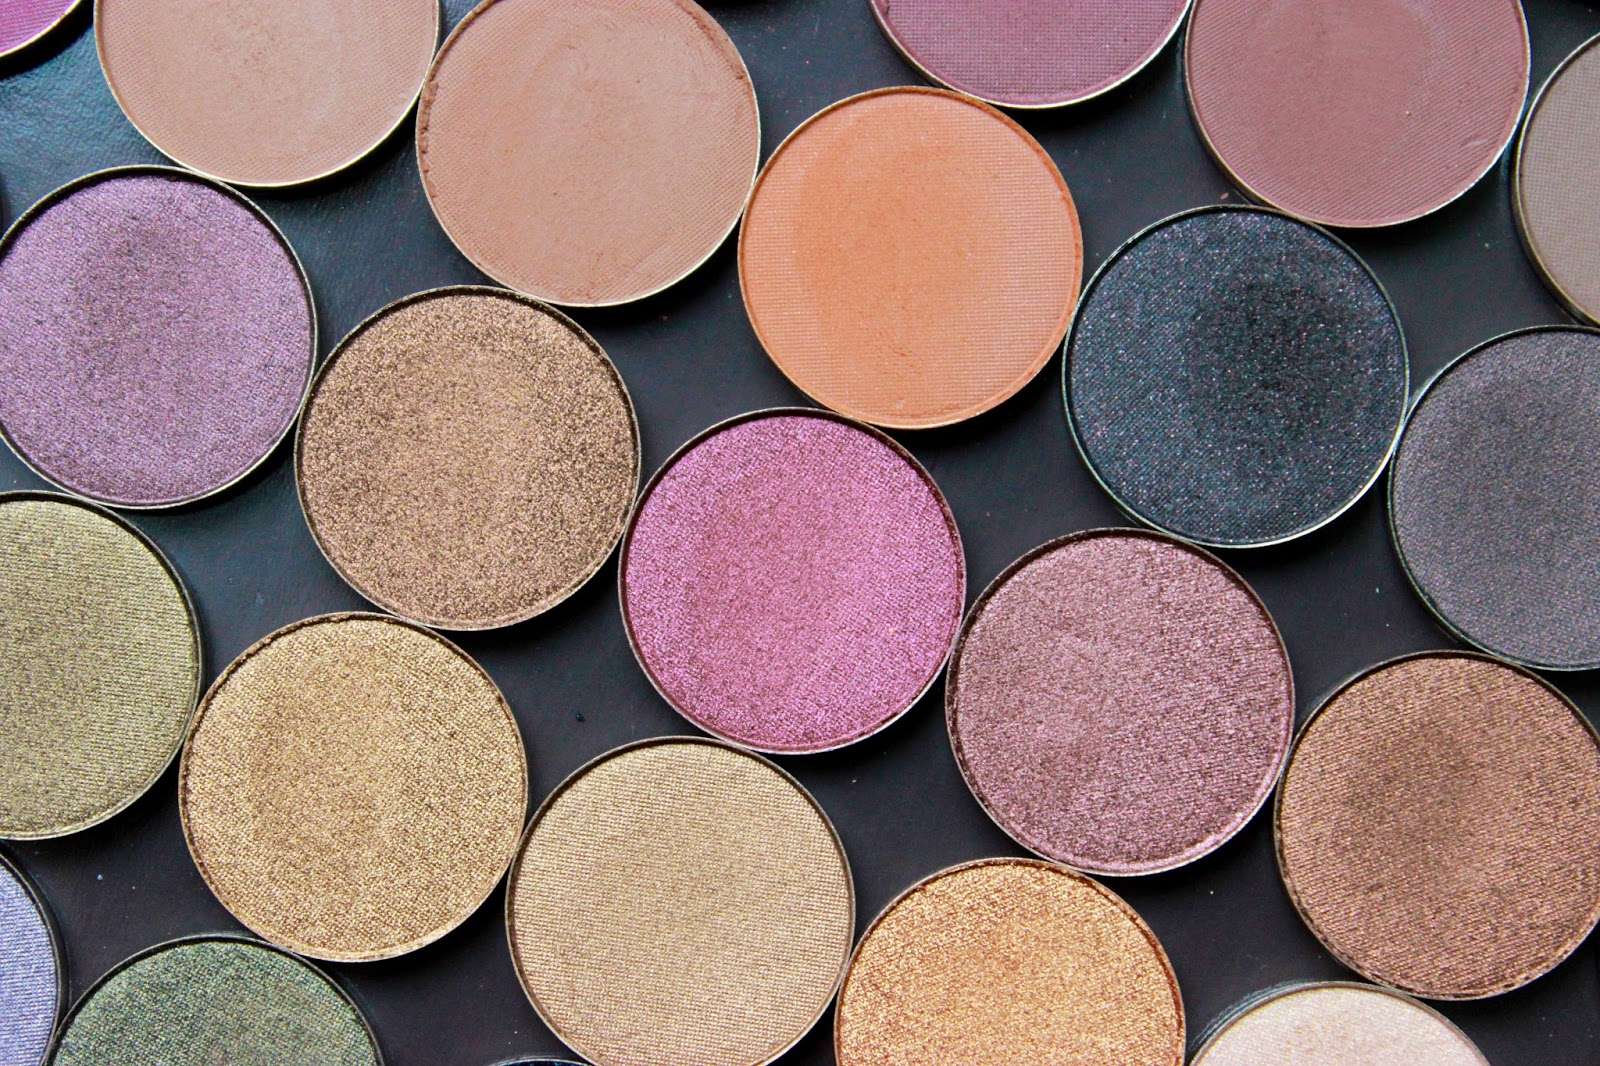 Coastal Scents Hot Pots Swatches Discoveries Of Self Blog